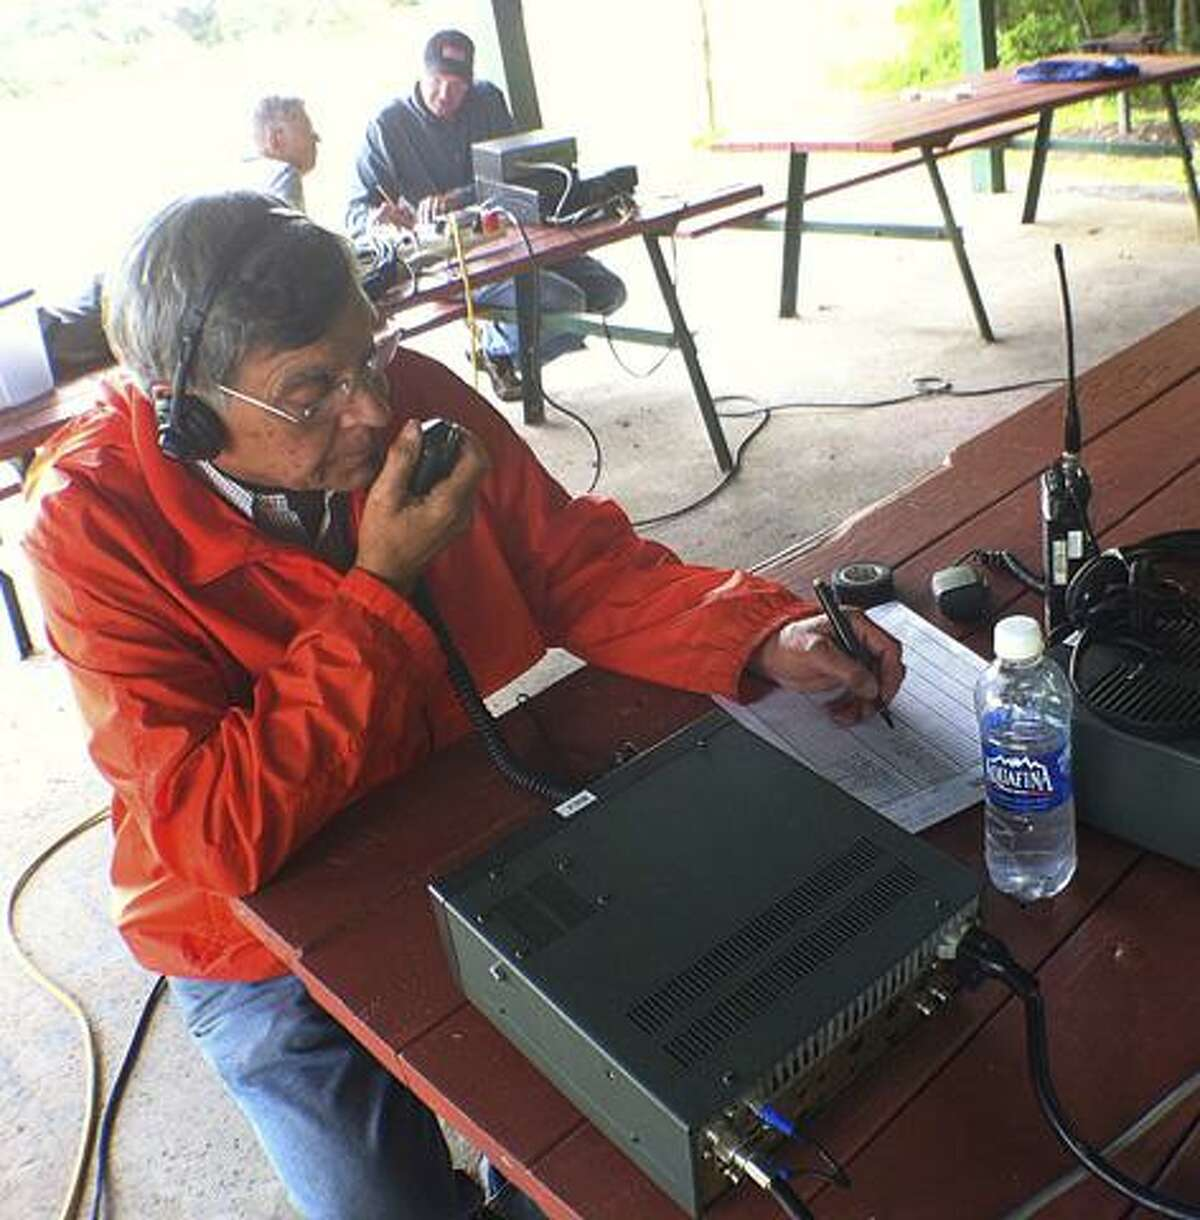 Dispatch Staff Photo by JOHN HAEGERRolfe Ferrara along with fellow Madison-Oneida Amateur Radio Club members work to make contacts during the annual Field Day event sponsored by the American Radio Relay League on Saturday, June 25, 2011 at Oxbow Park.